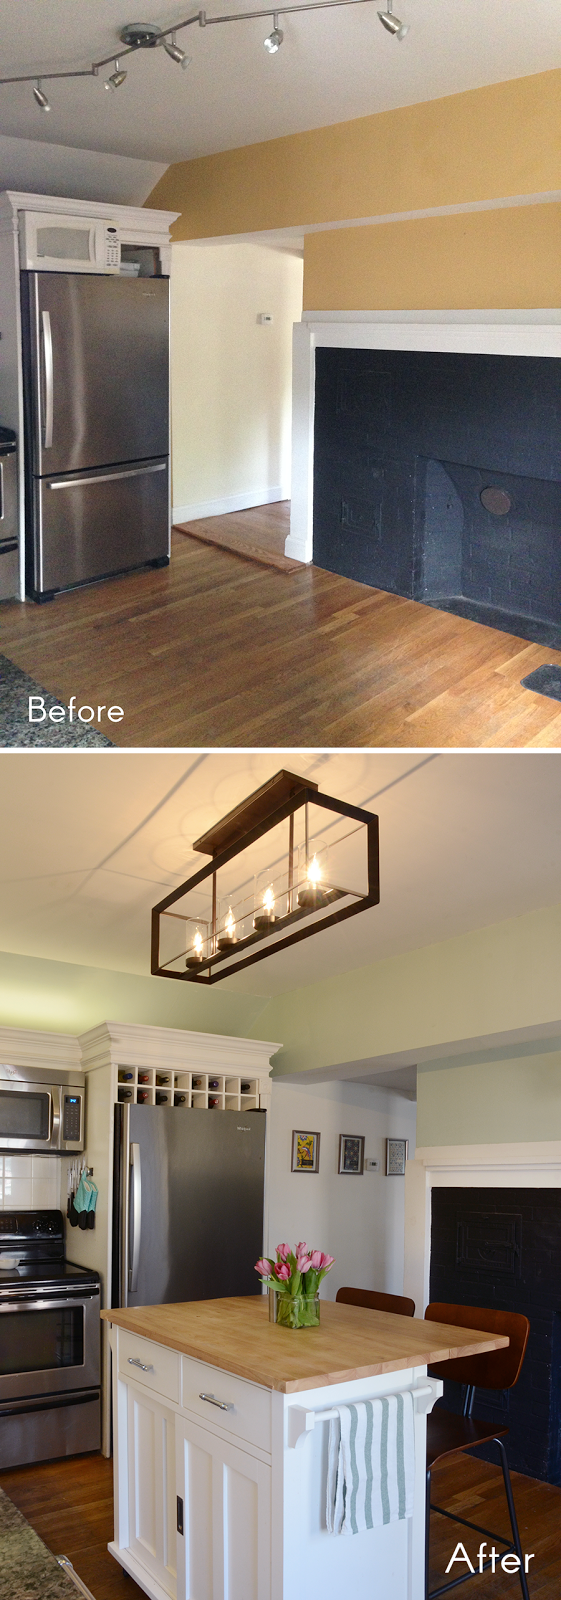 Before & After: New Kitchen Lighting For The Win /// By Design Fixation